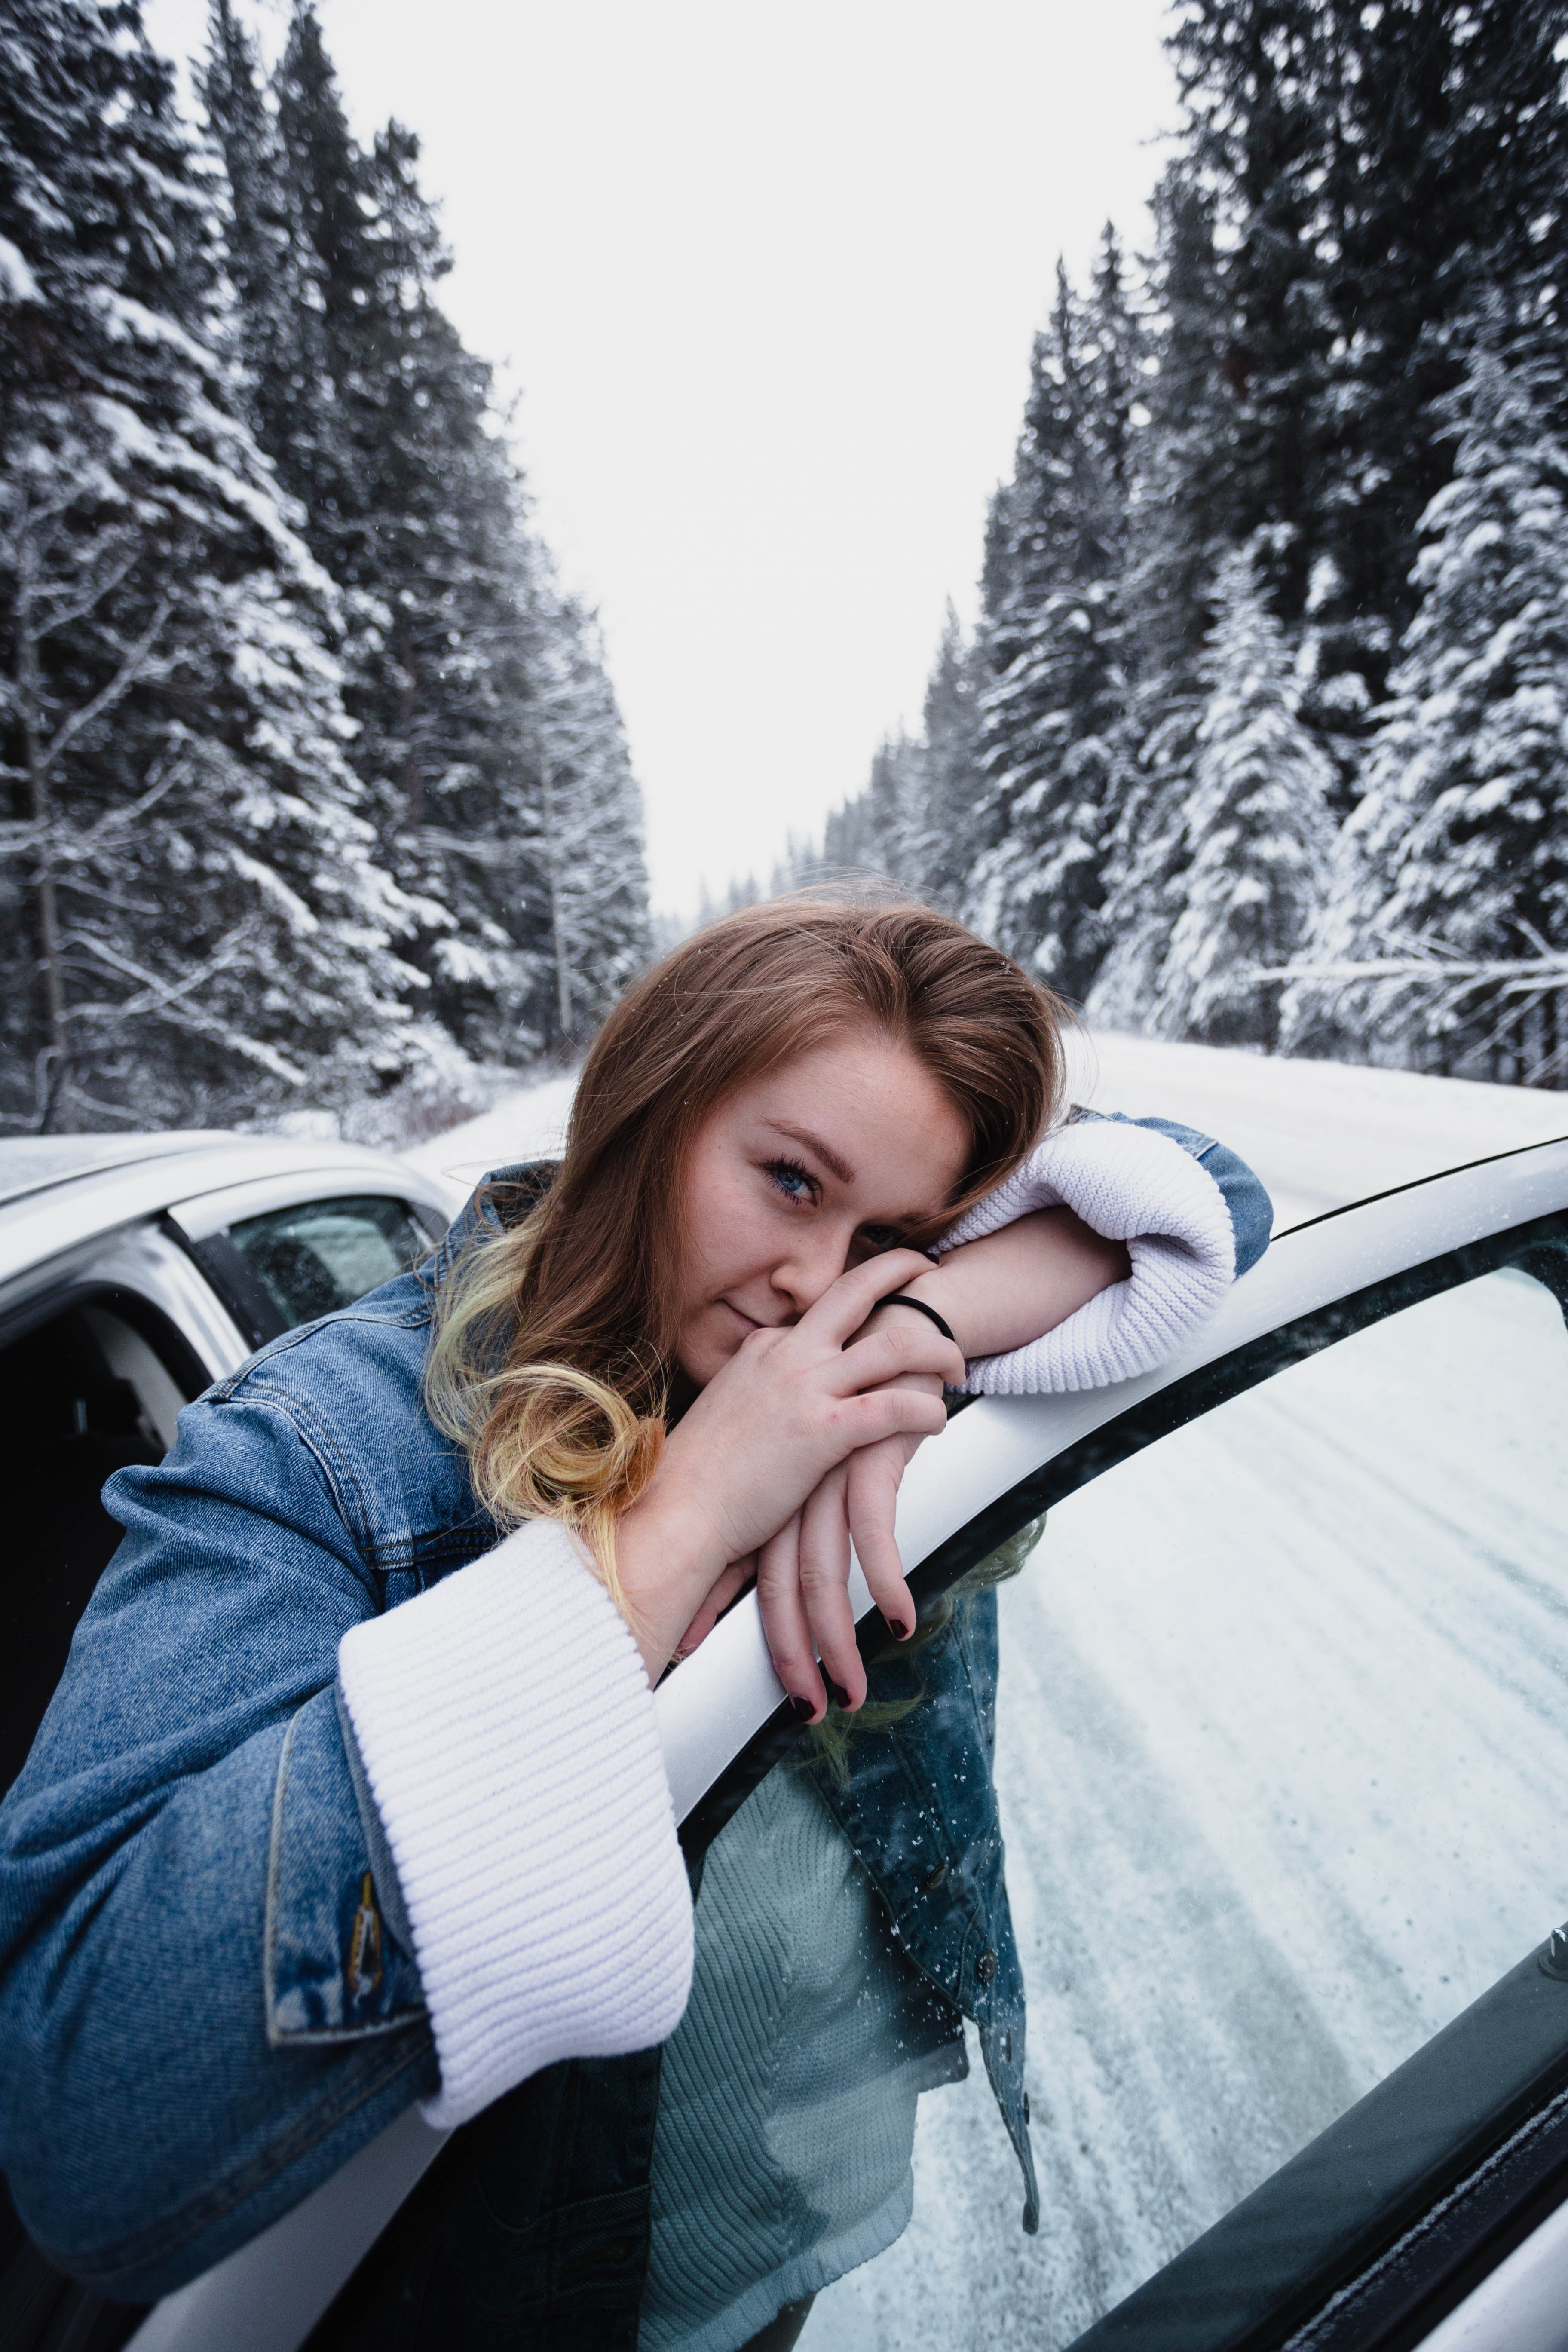 woman wearing blue denim jeans leaning on white vehicle door on road beside pine trees covered with snow during winter